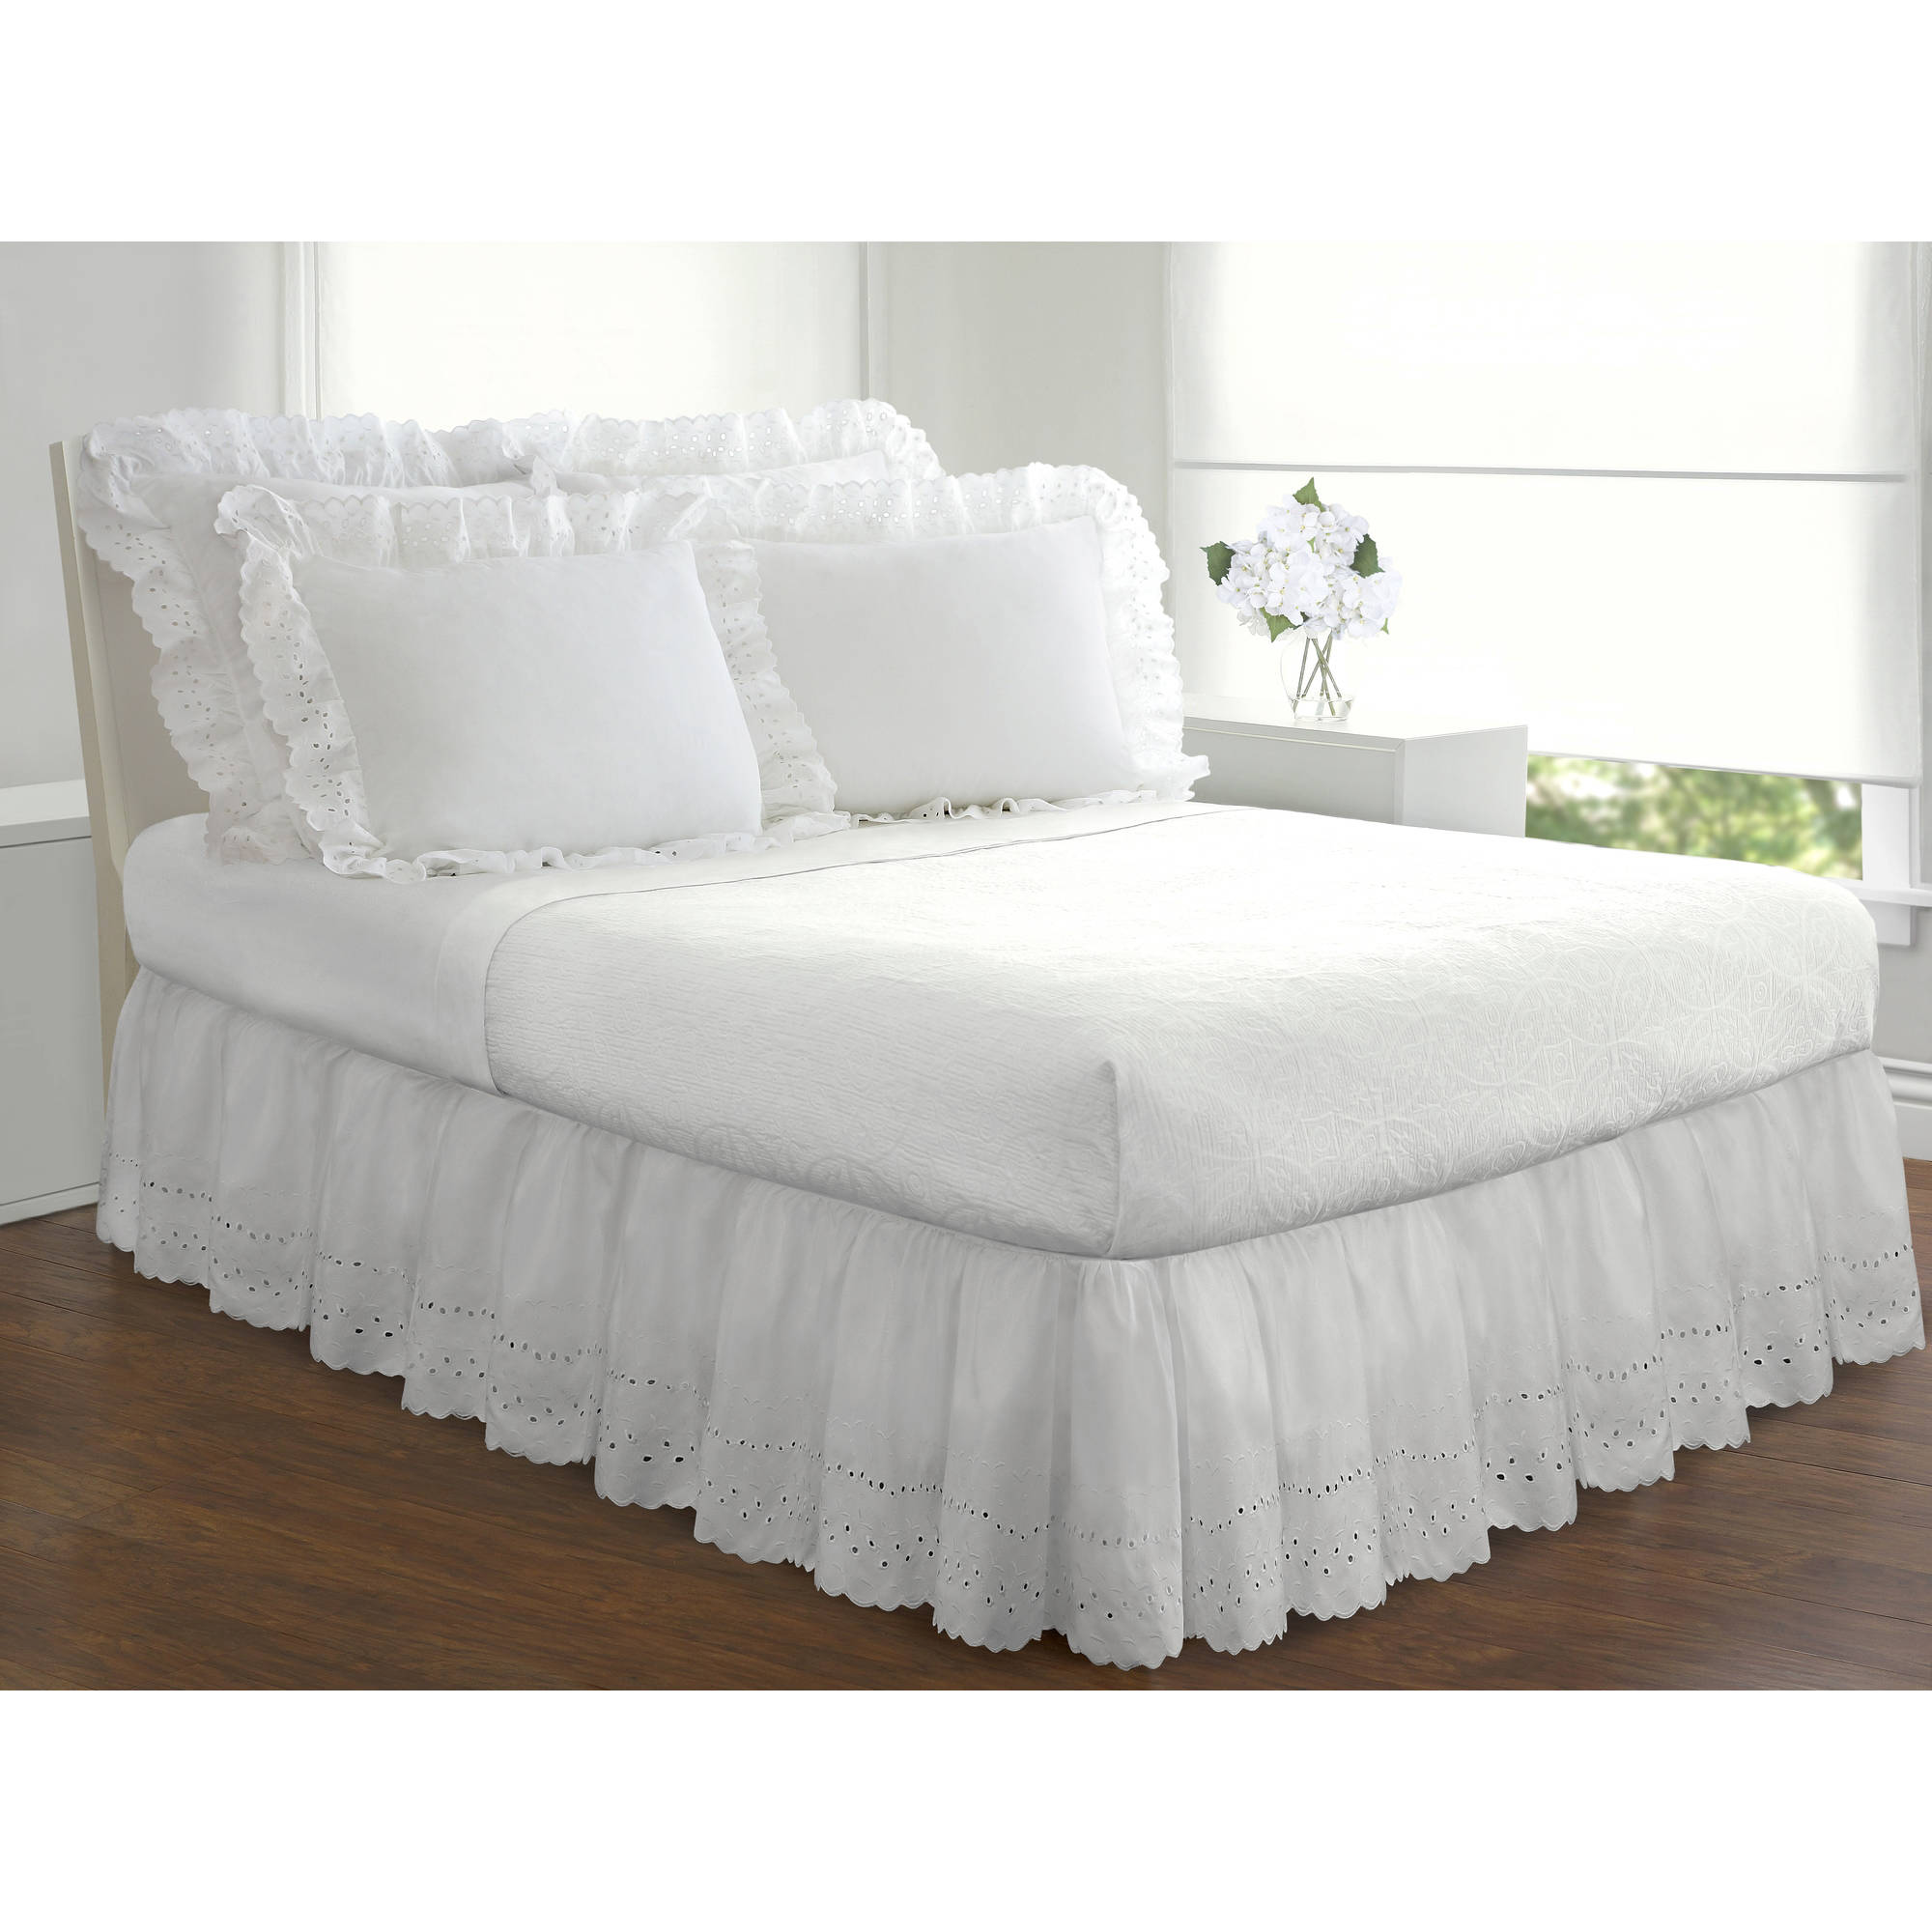 Fresh Ideas Ruffles Eyelet Collection Bed Skirts And Shams Sold Separately Walmart Com Walmart Com